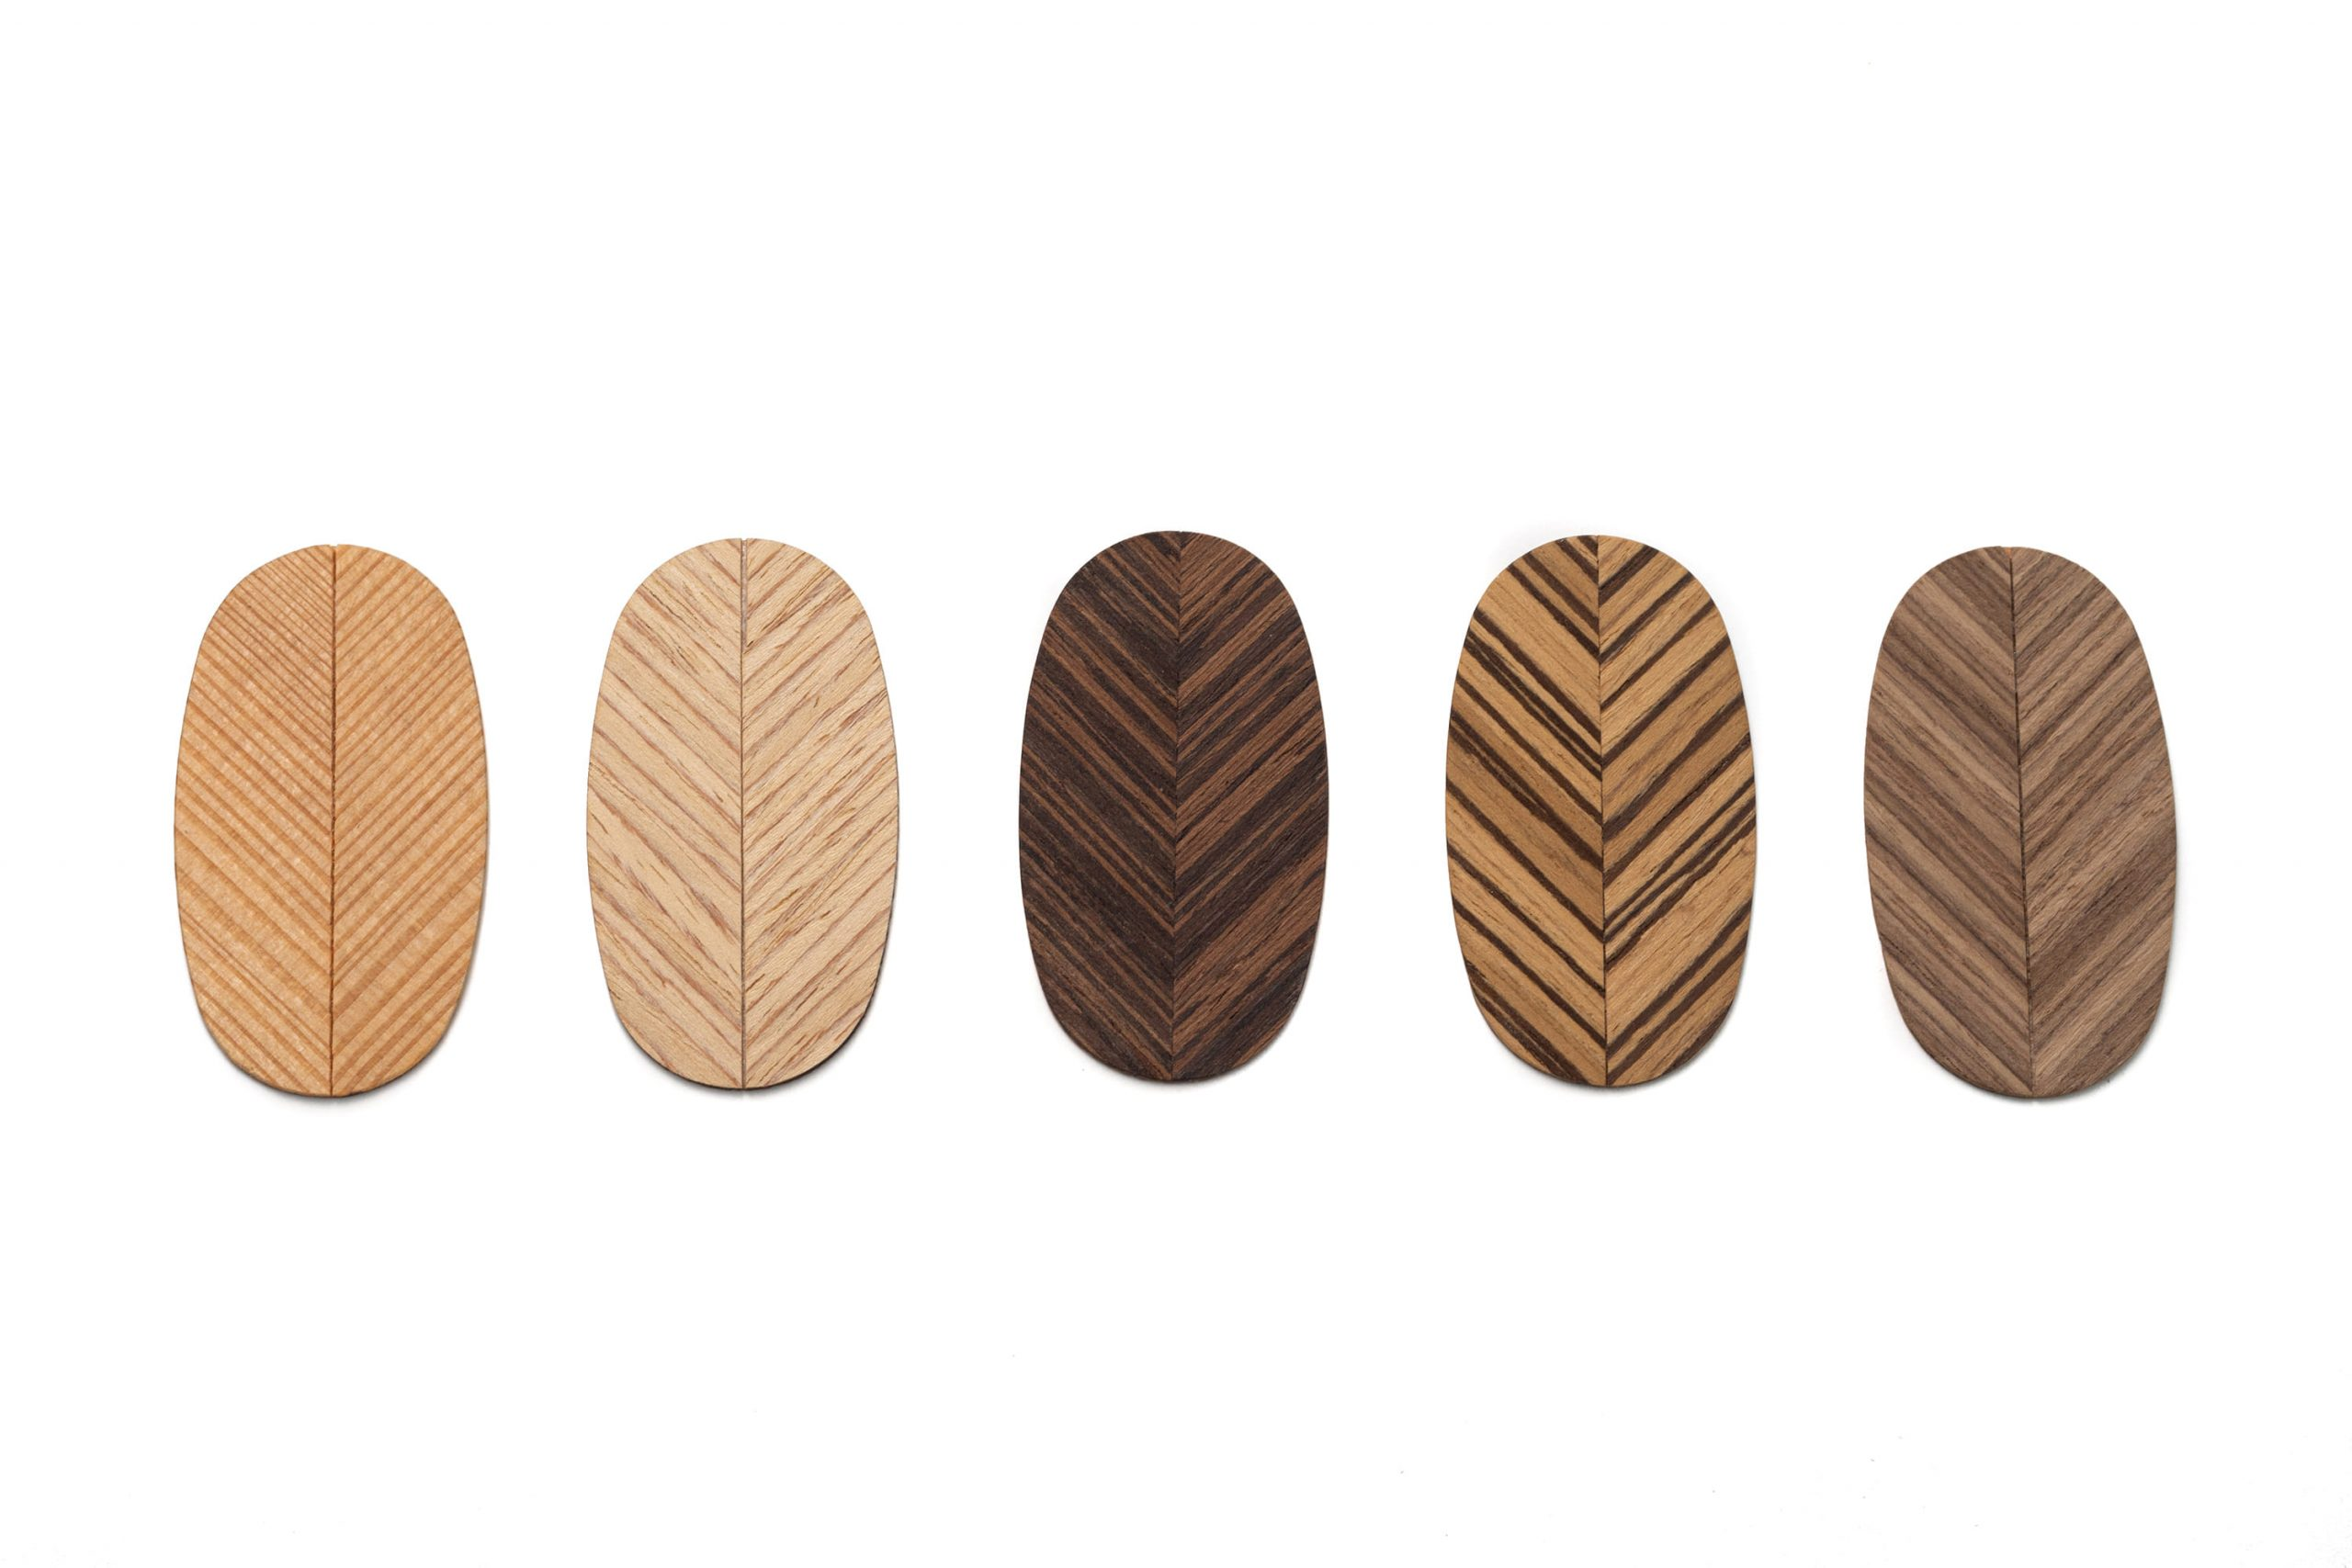 Slovenian Leaf Shaped Broches In Different Colors